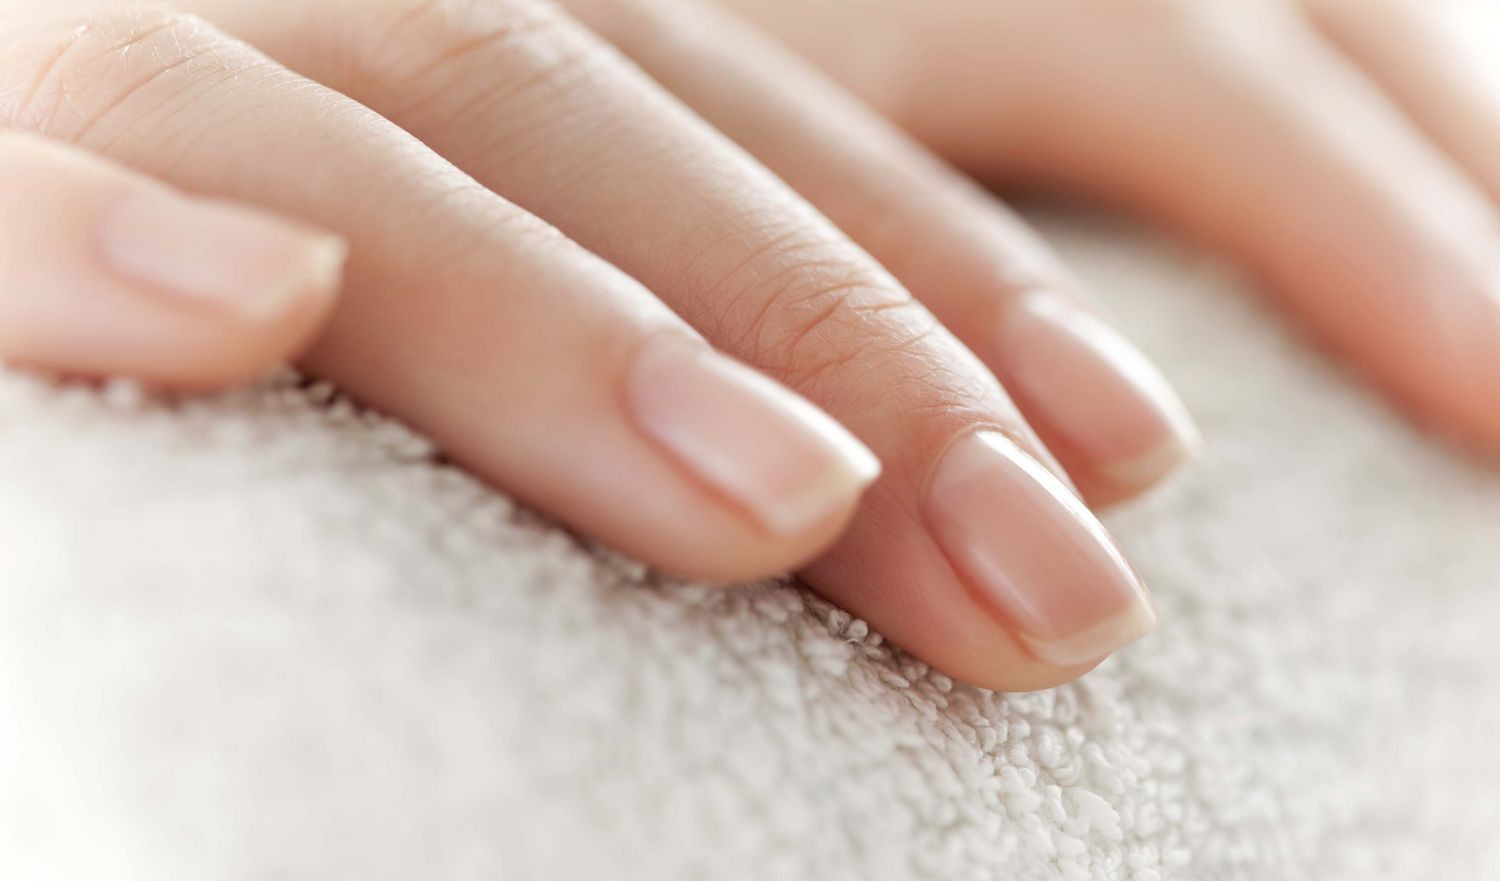 10 home remedies for shiny nails